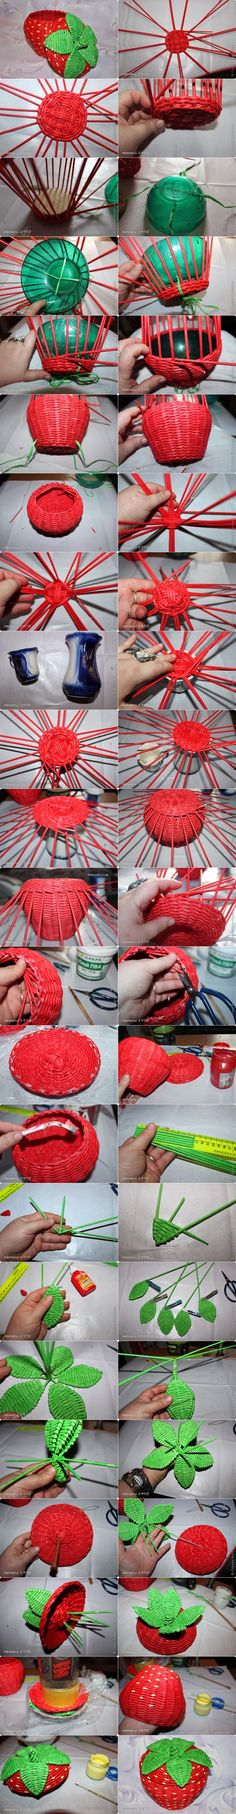 DIY Woven Strawberry Shaped Basket from Recycled Newspaper - DIY Tutorials Newspaper Basket, Newspaper Crafts, Recycle Newspaper, Hobbies And Crafts, Diy And Crafts, Papier Diy, Paper Weaving, Recycled Crafts, Diy Projects To Try